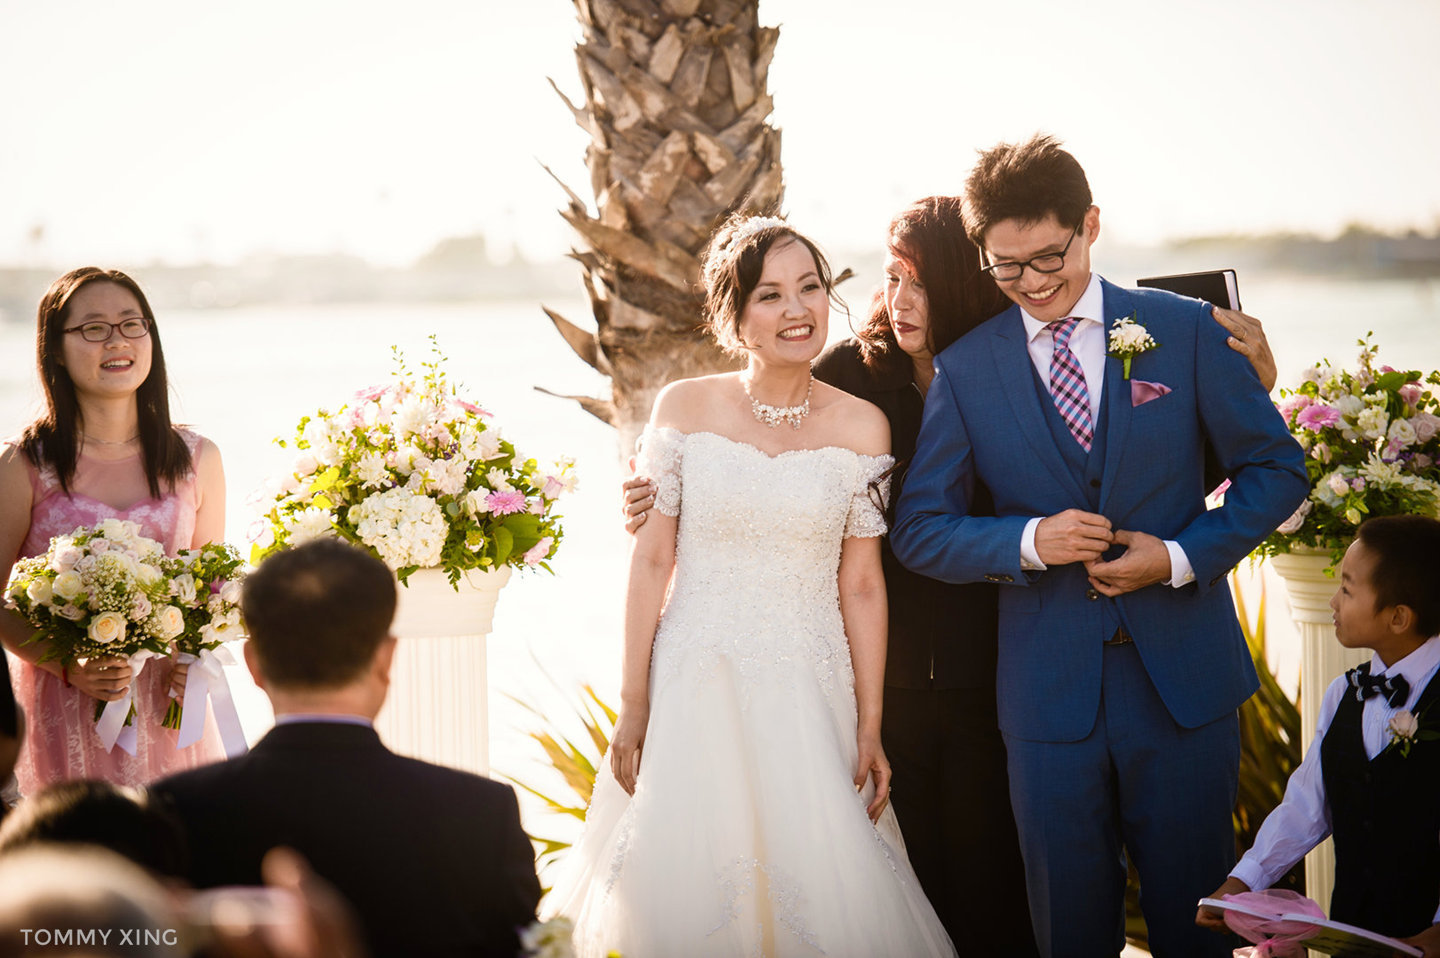 Paradise Point Resort Wedding Xiaolu & Bin San Diego 圣地亚哥婚礼摄影跟拍 Tommy Xing Photography 洛杉矶婚礼婚纱照摄影师 118.jpg